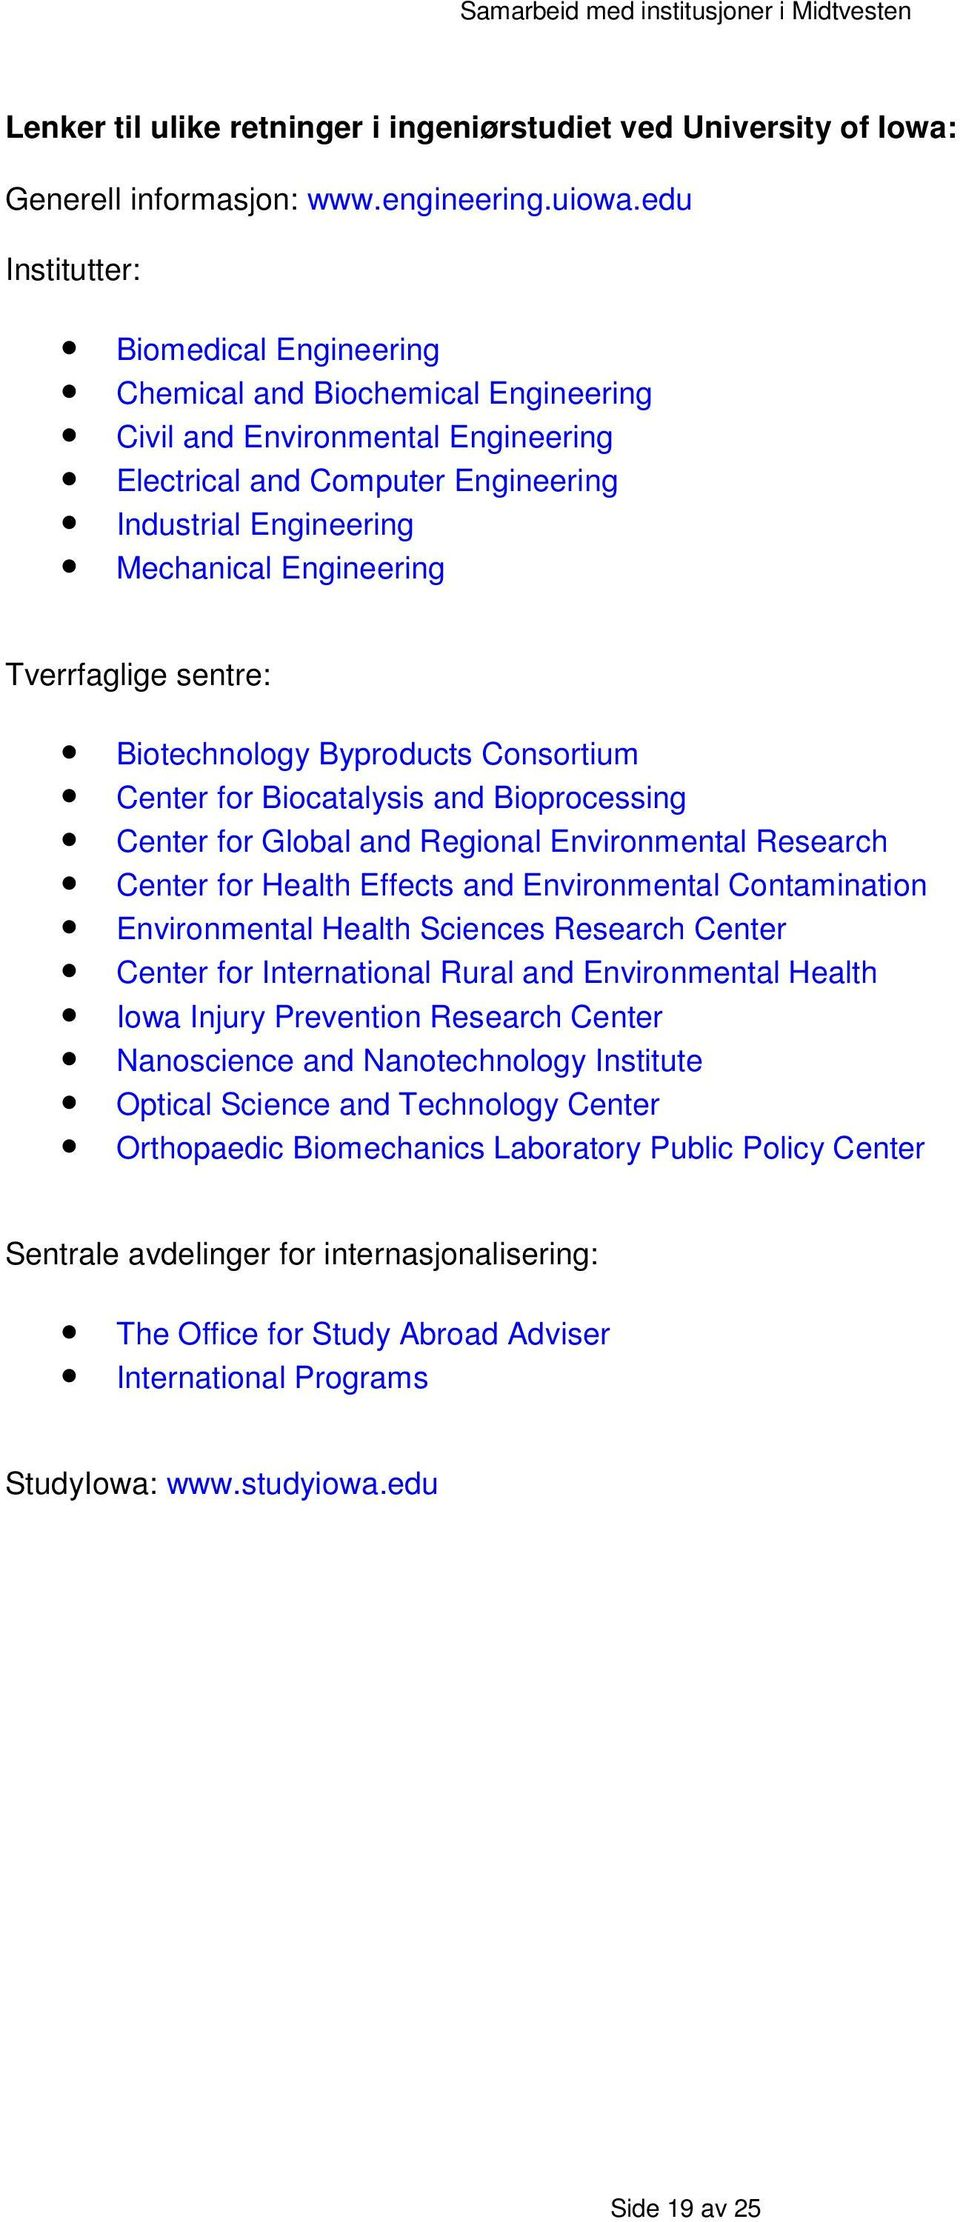 Tverrfaglige sentre: Biotechnology Byproducts Consortium Center for Biocatalysis and Bioprocessing Center for Global and Regional Environmental Research Center for Health Effects and Environmental